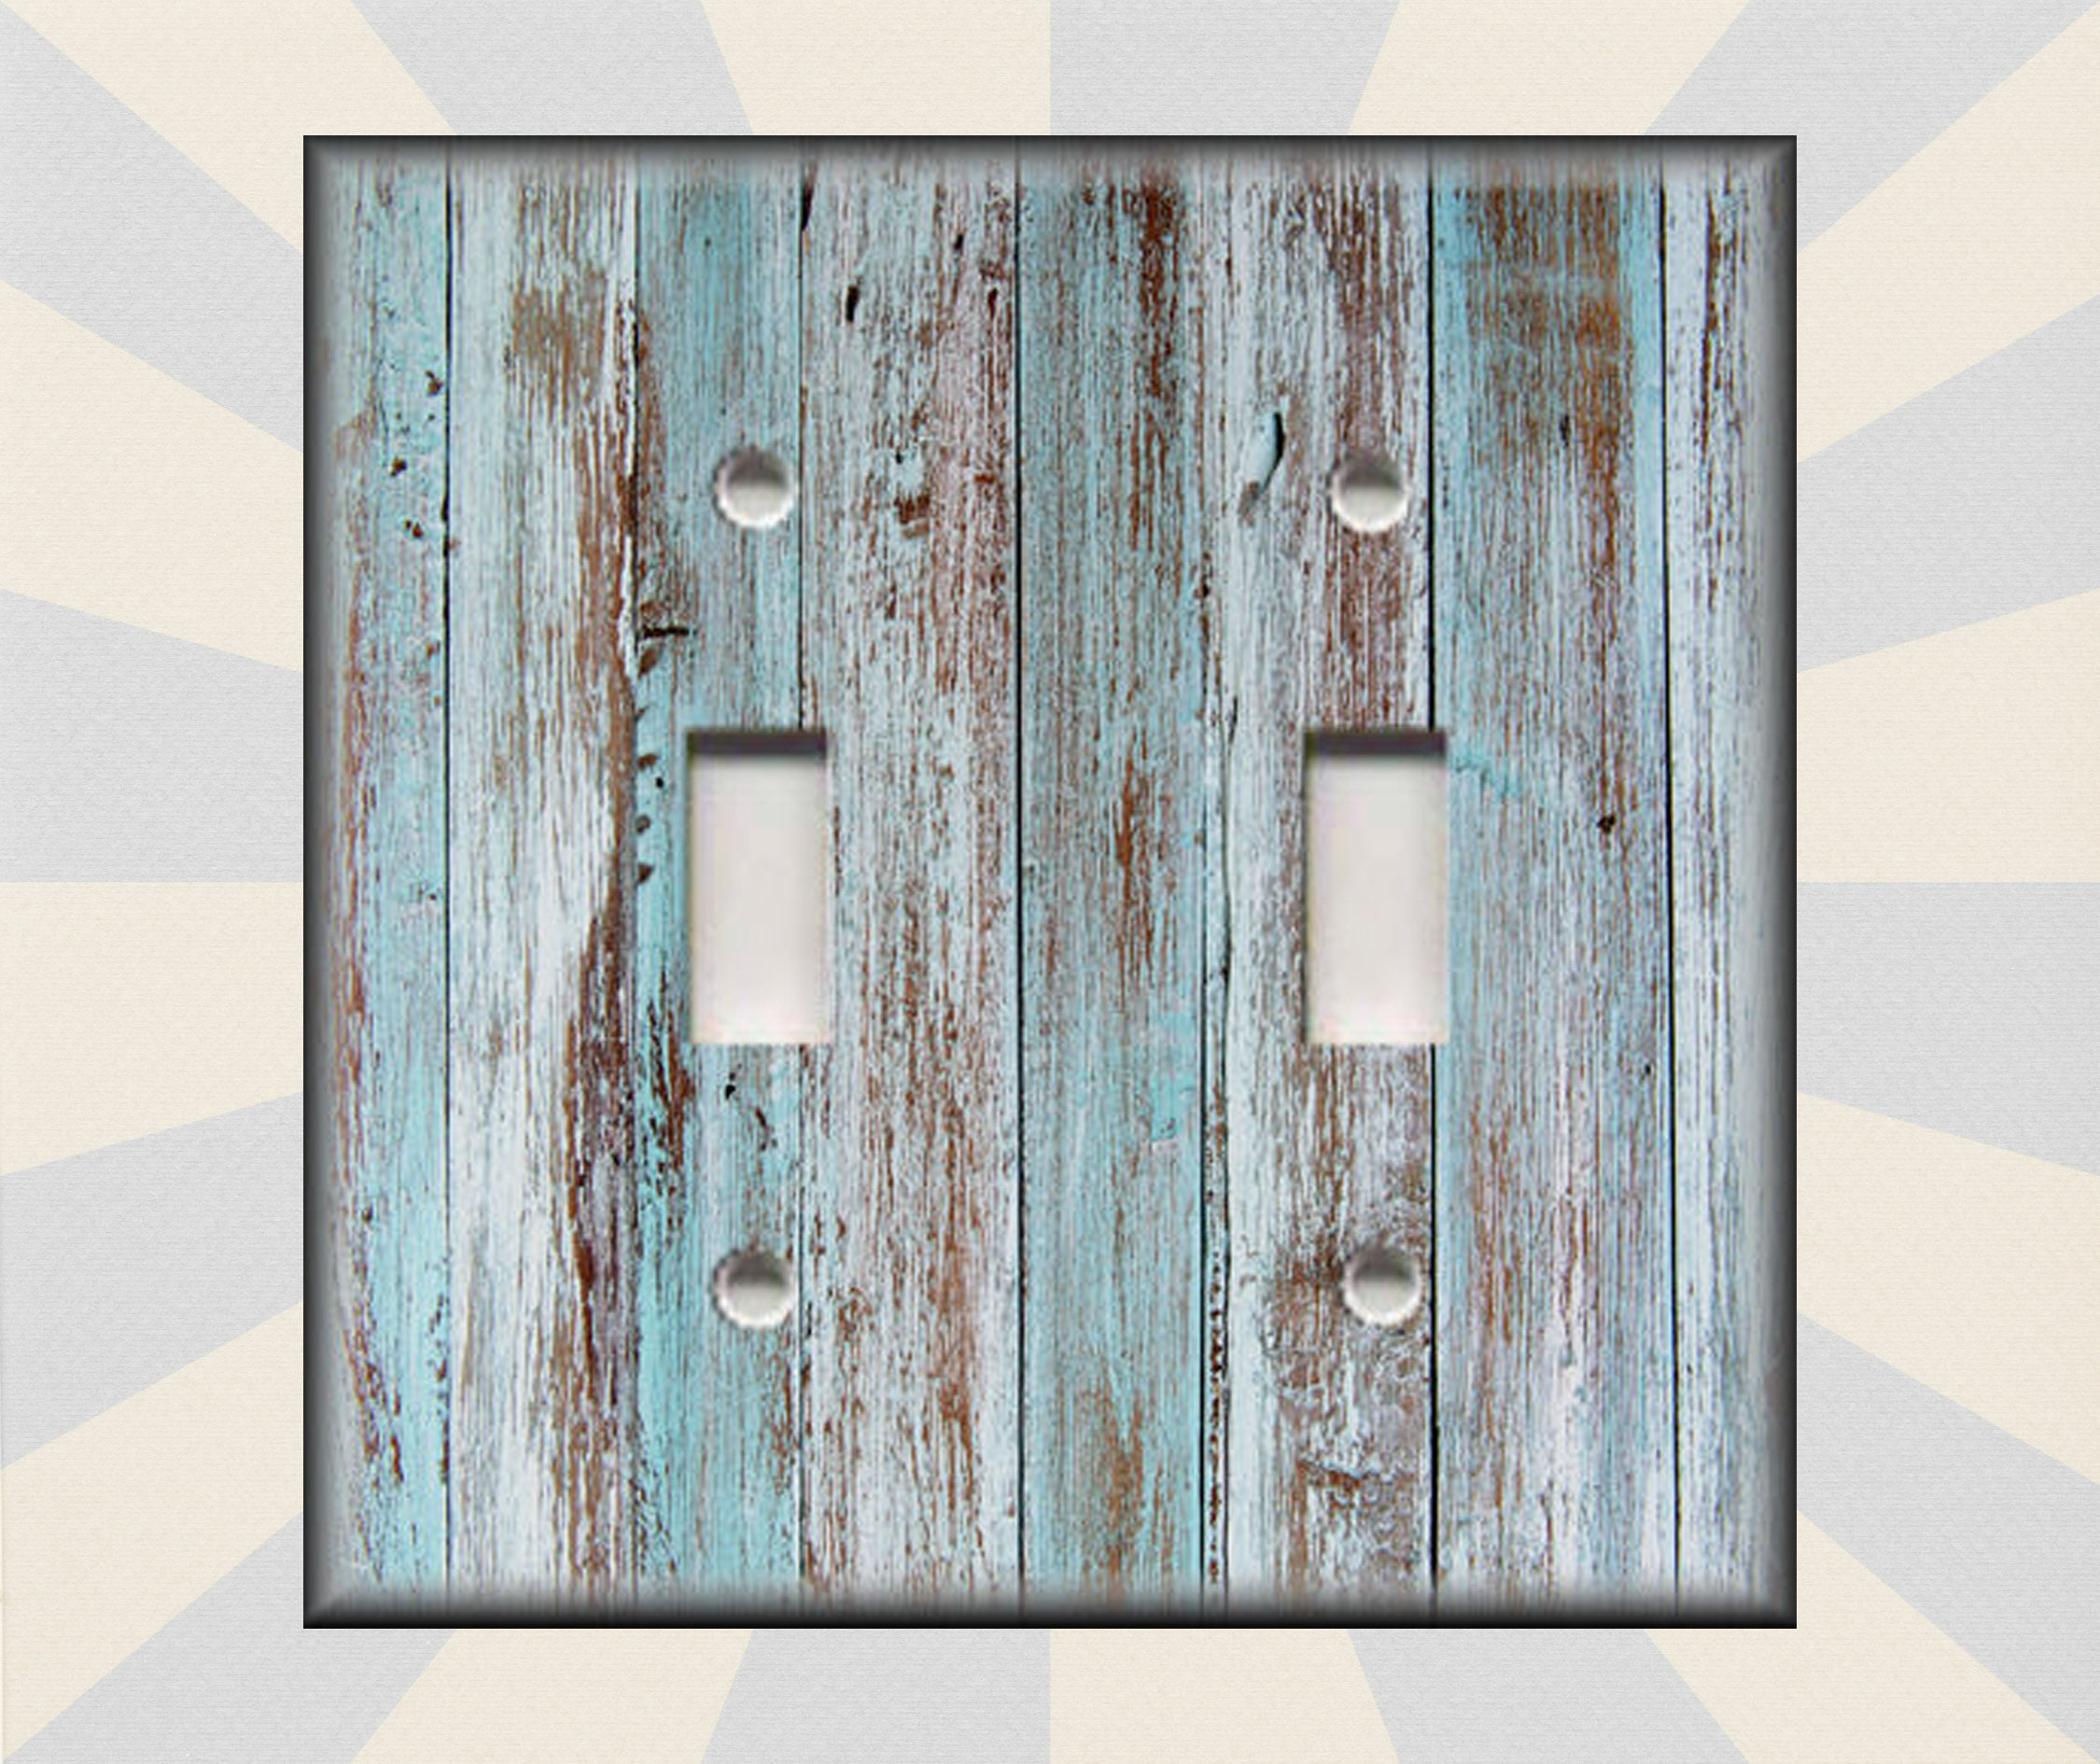 RUSTIC OLD WOOD NAUTICAL SEA SHELL FISH NET LIGHT DOUBLE GFCI SWITCH PLATE DECOR